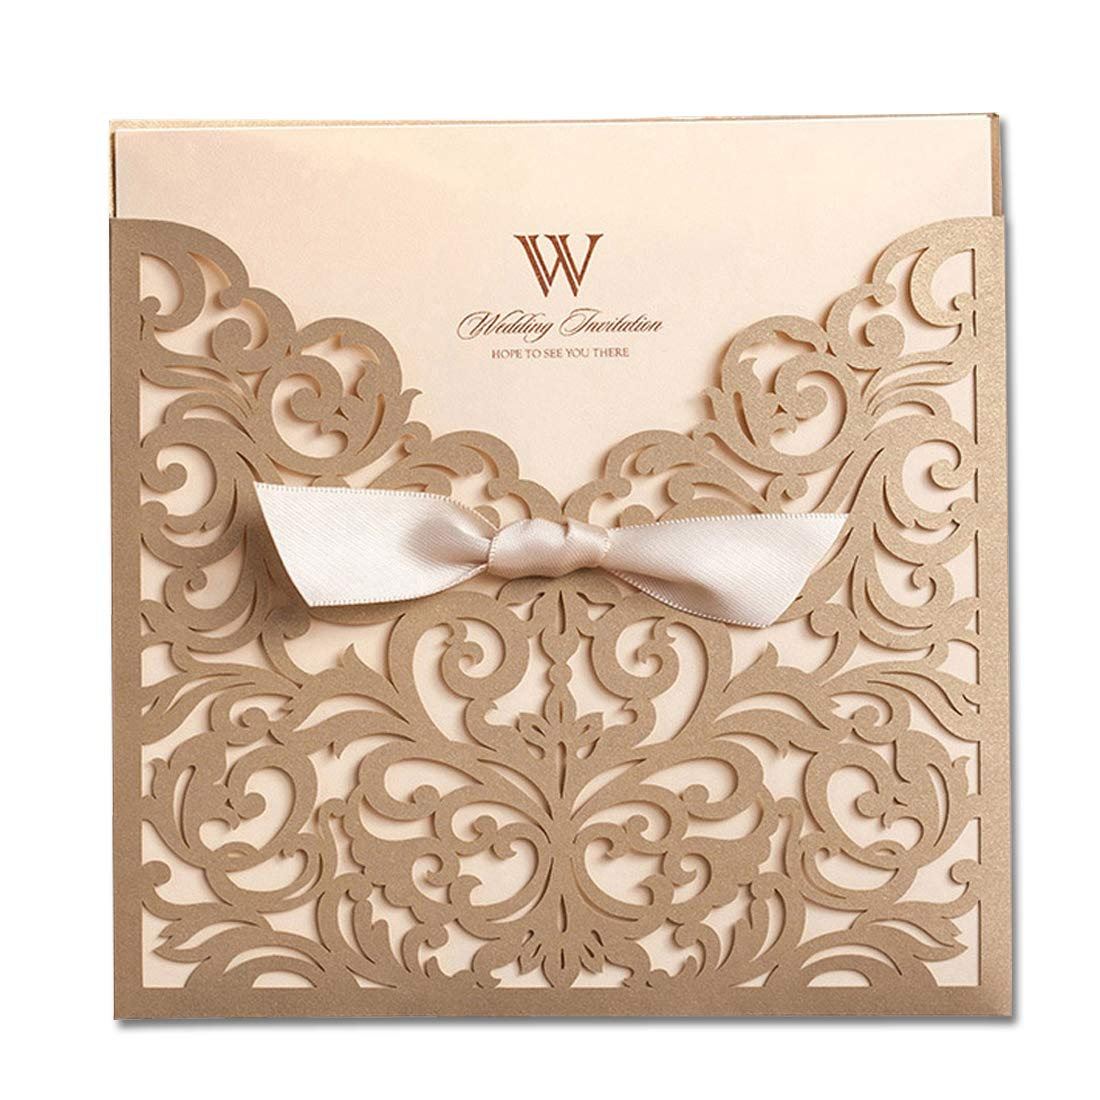 Amazon Wishmade Square Gold Laser Cut Wedding Invitations With Lace Bow Hollow Favors Invitation For Engagement Marriage Bridal Shower Birthday Card: Elgant Ivory Silver Bling Wedding Invitations At Reisefeber.org